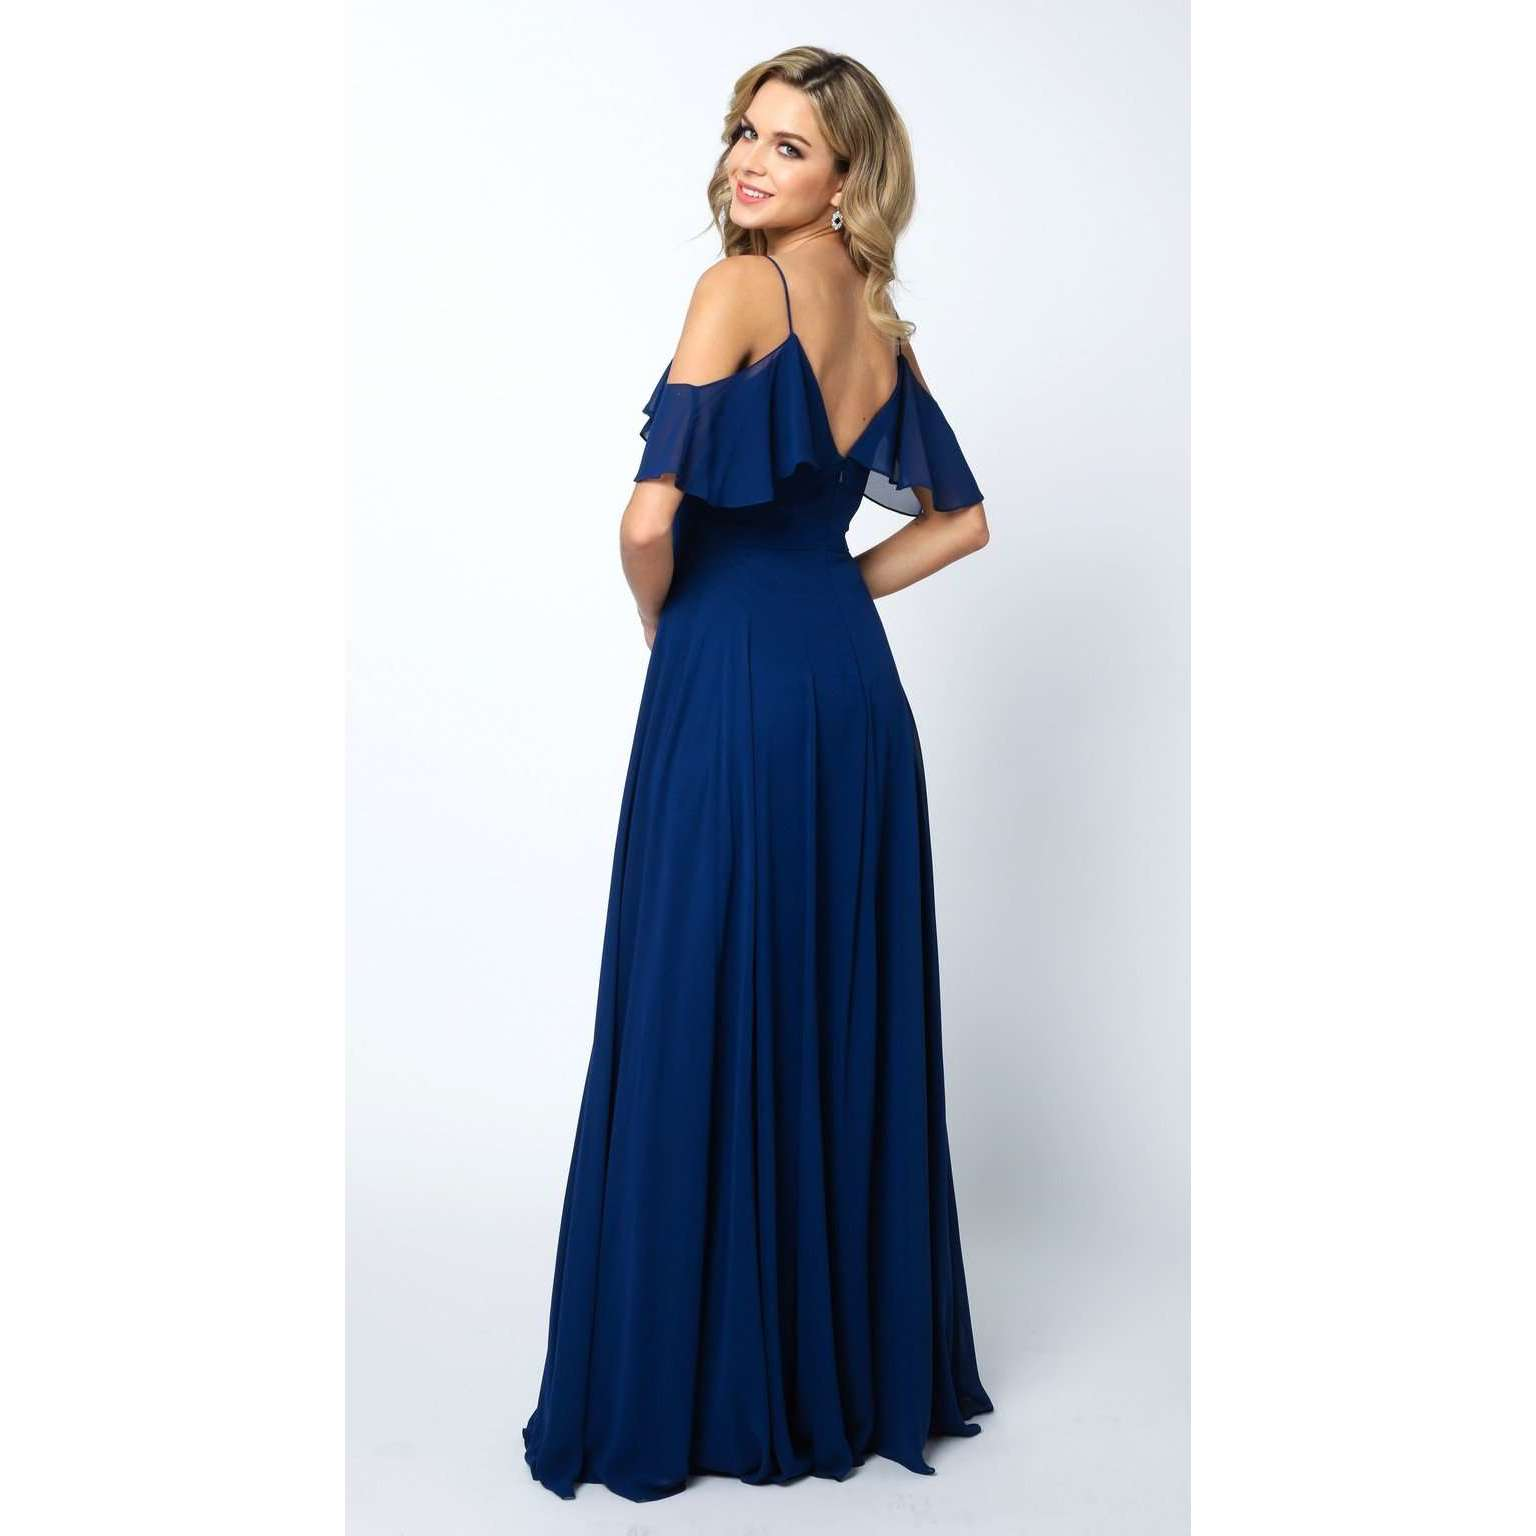 Long Chiffon  Off-Shoulder Flounce Prom Dress 671 - Julietdresses